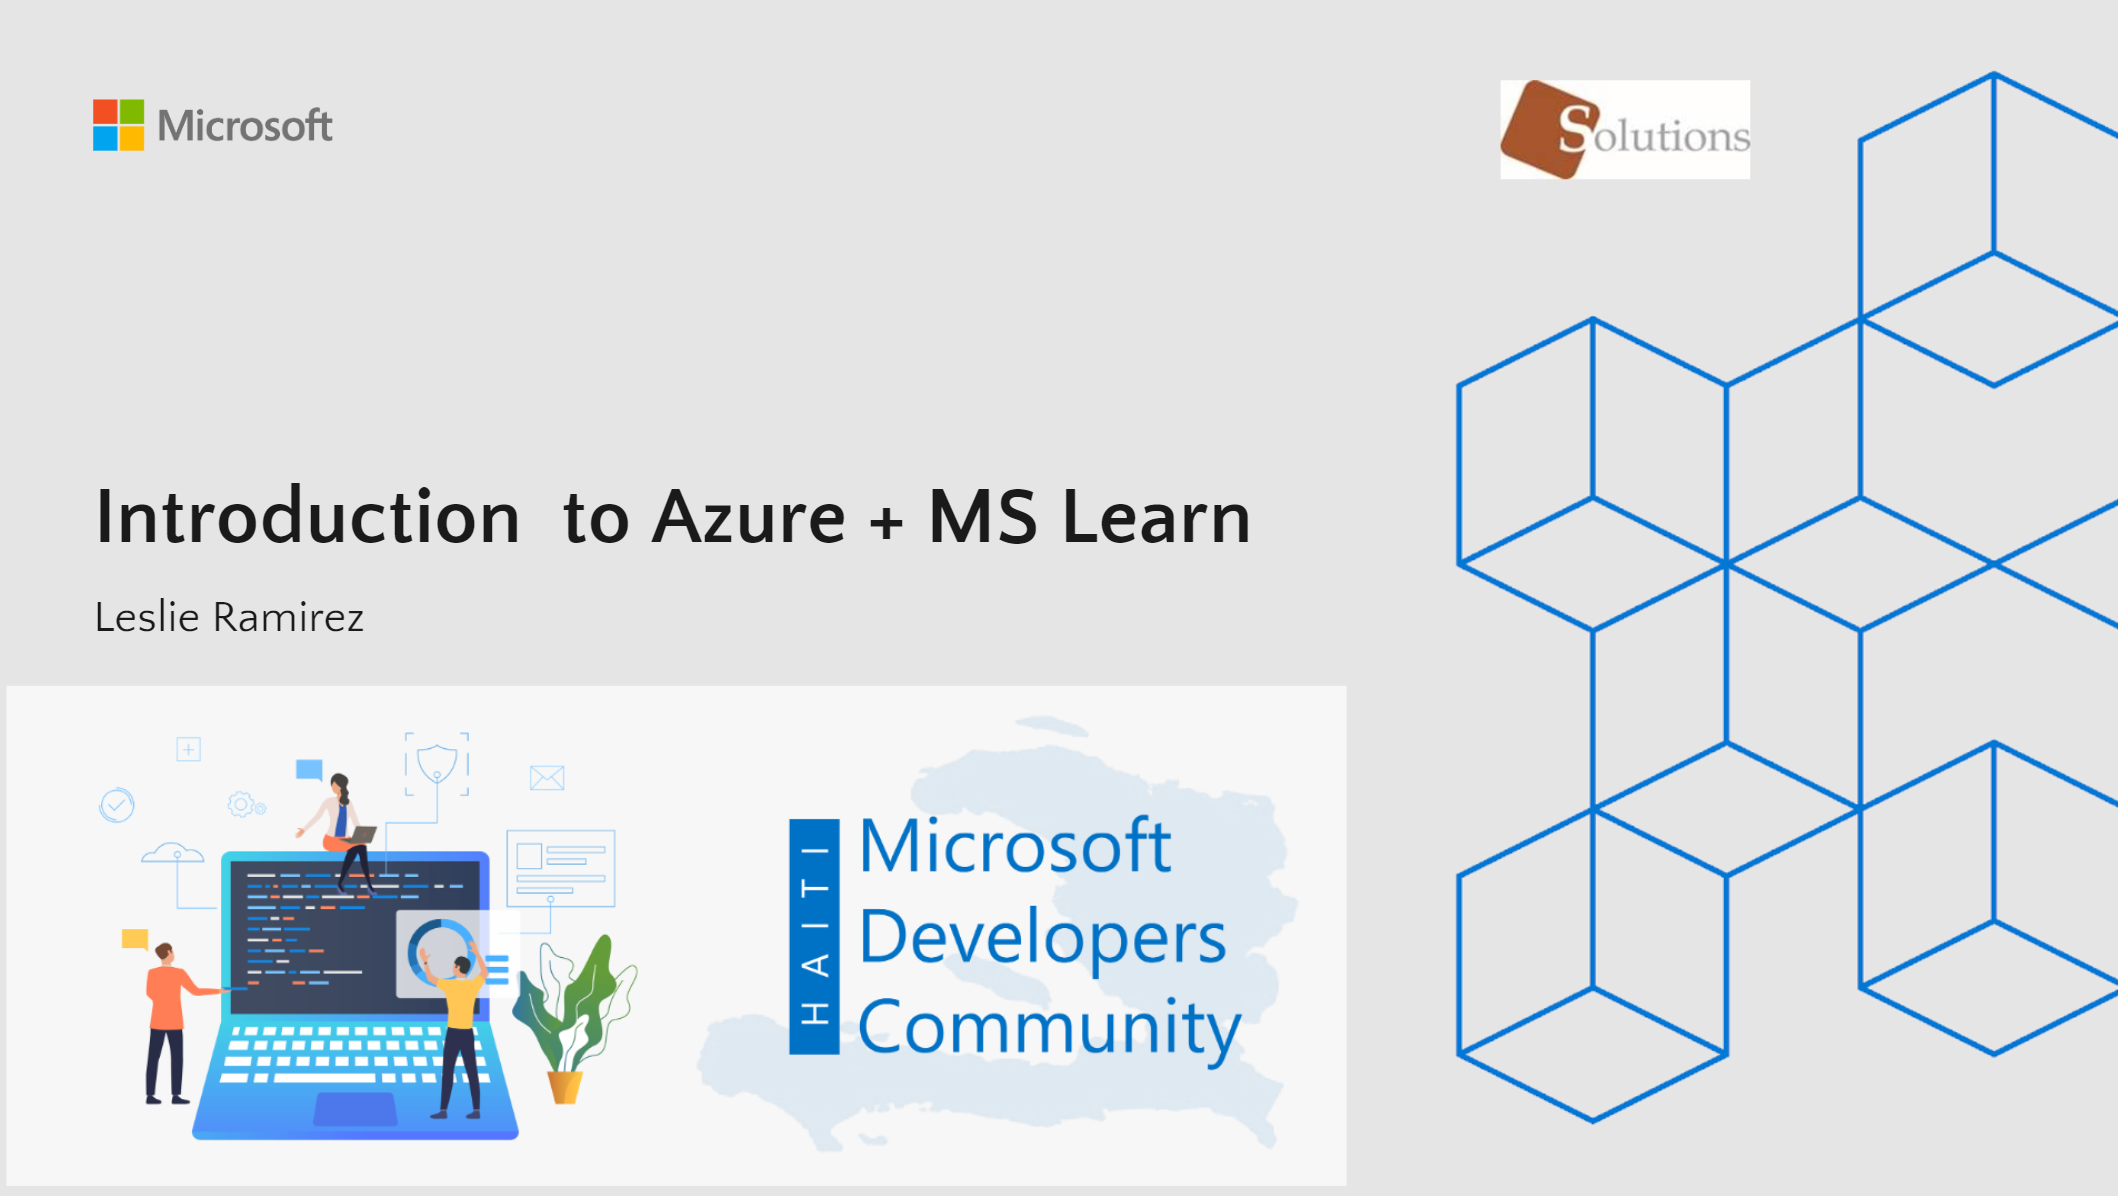 MICROSOFT DEVELOPERS COMMUNITY HAITI: Introduction to azure + MS Learn